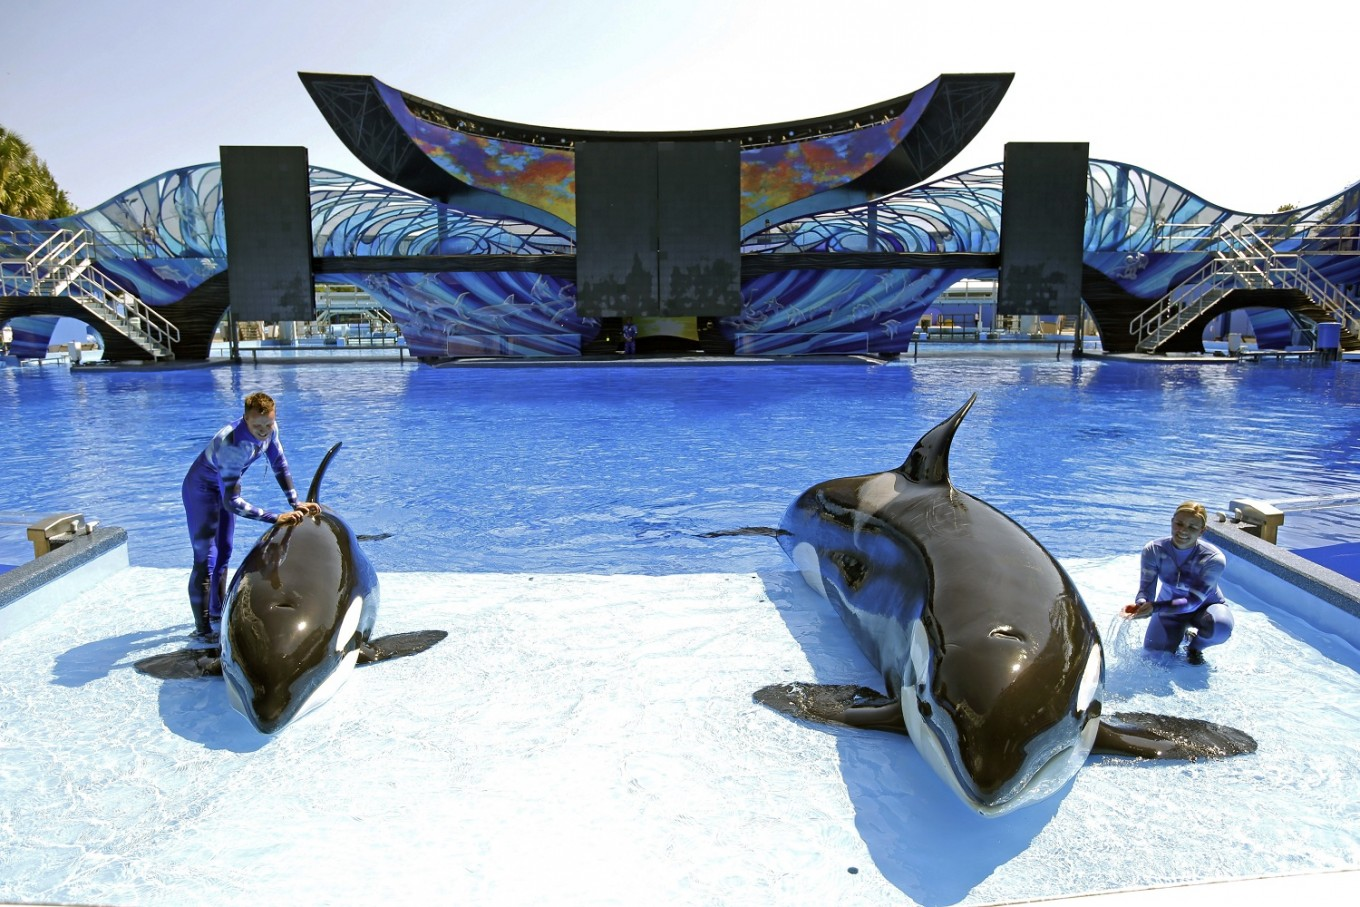 1st SeaWorld park without orcas opening in Abu Dhabi in 2022